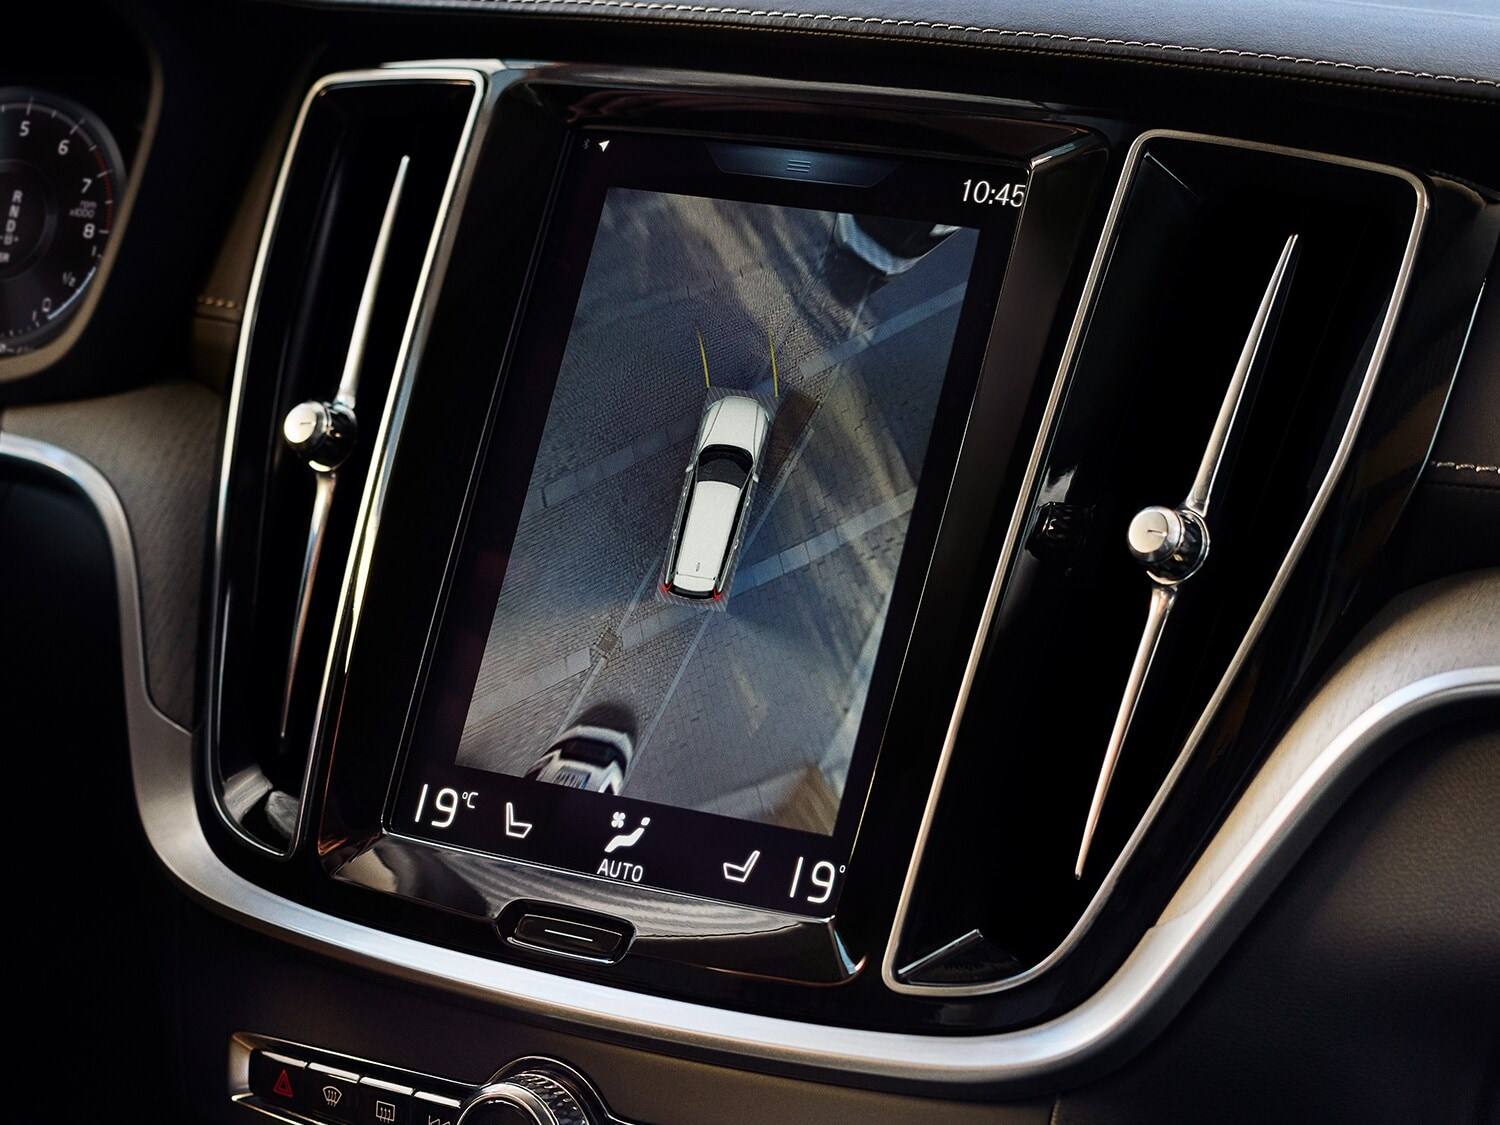 Centre display of the Volvo V60 Cross Country showing 360° camera view